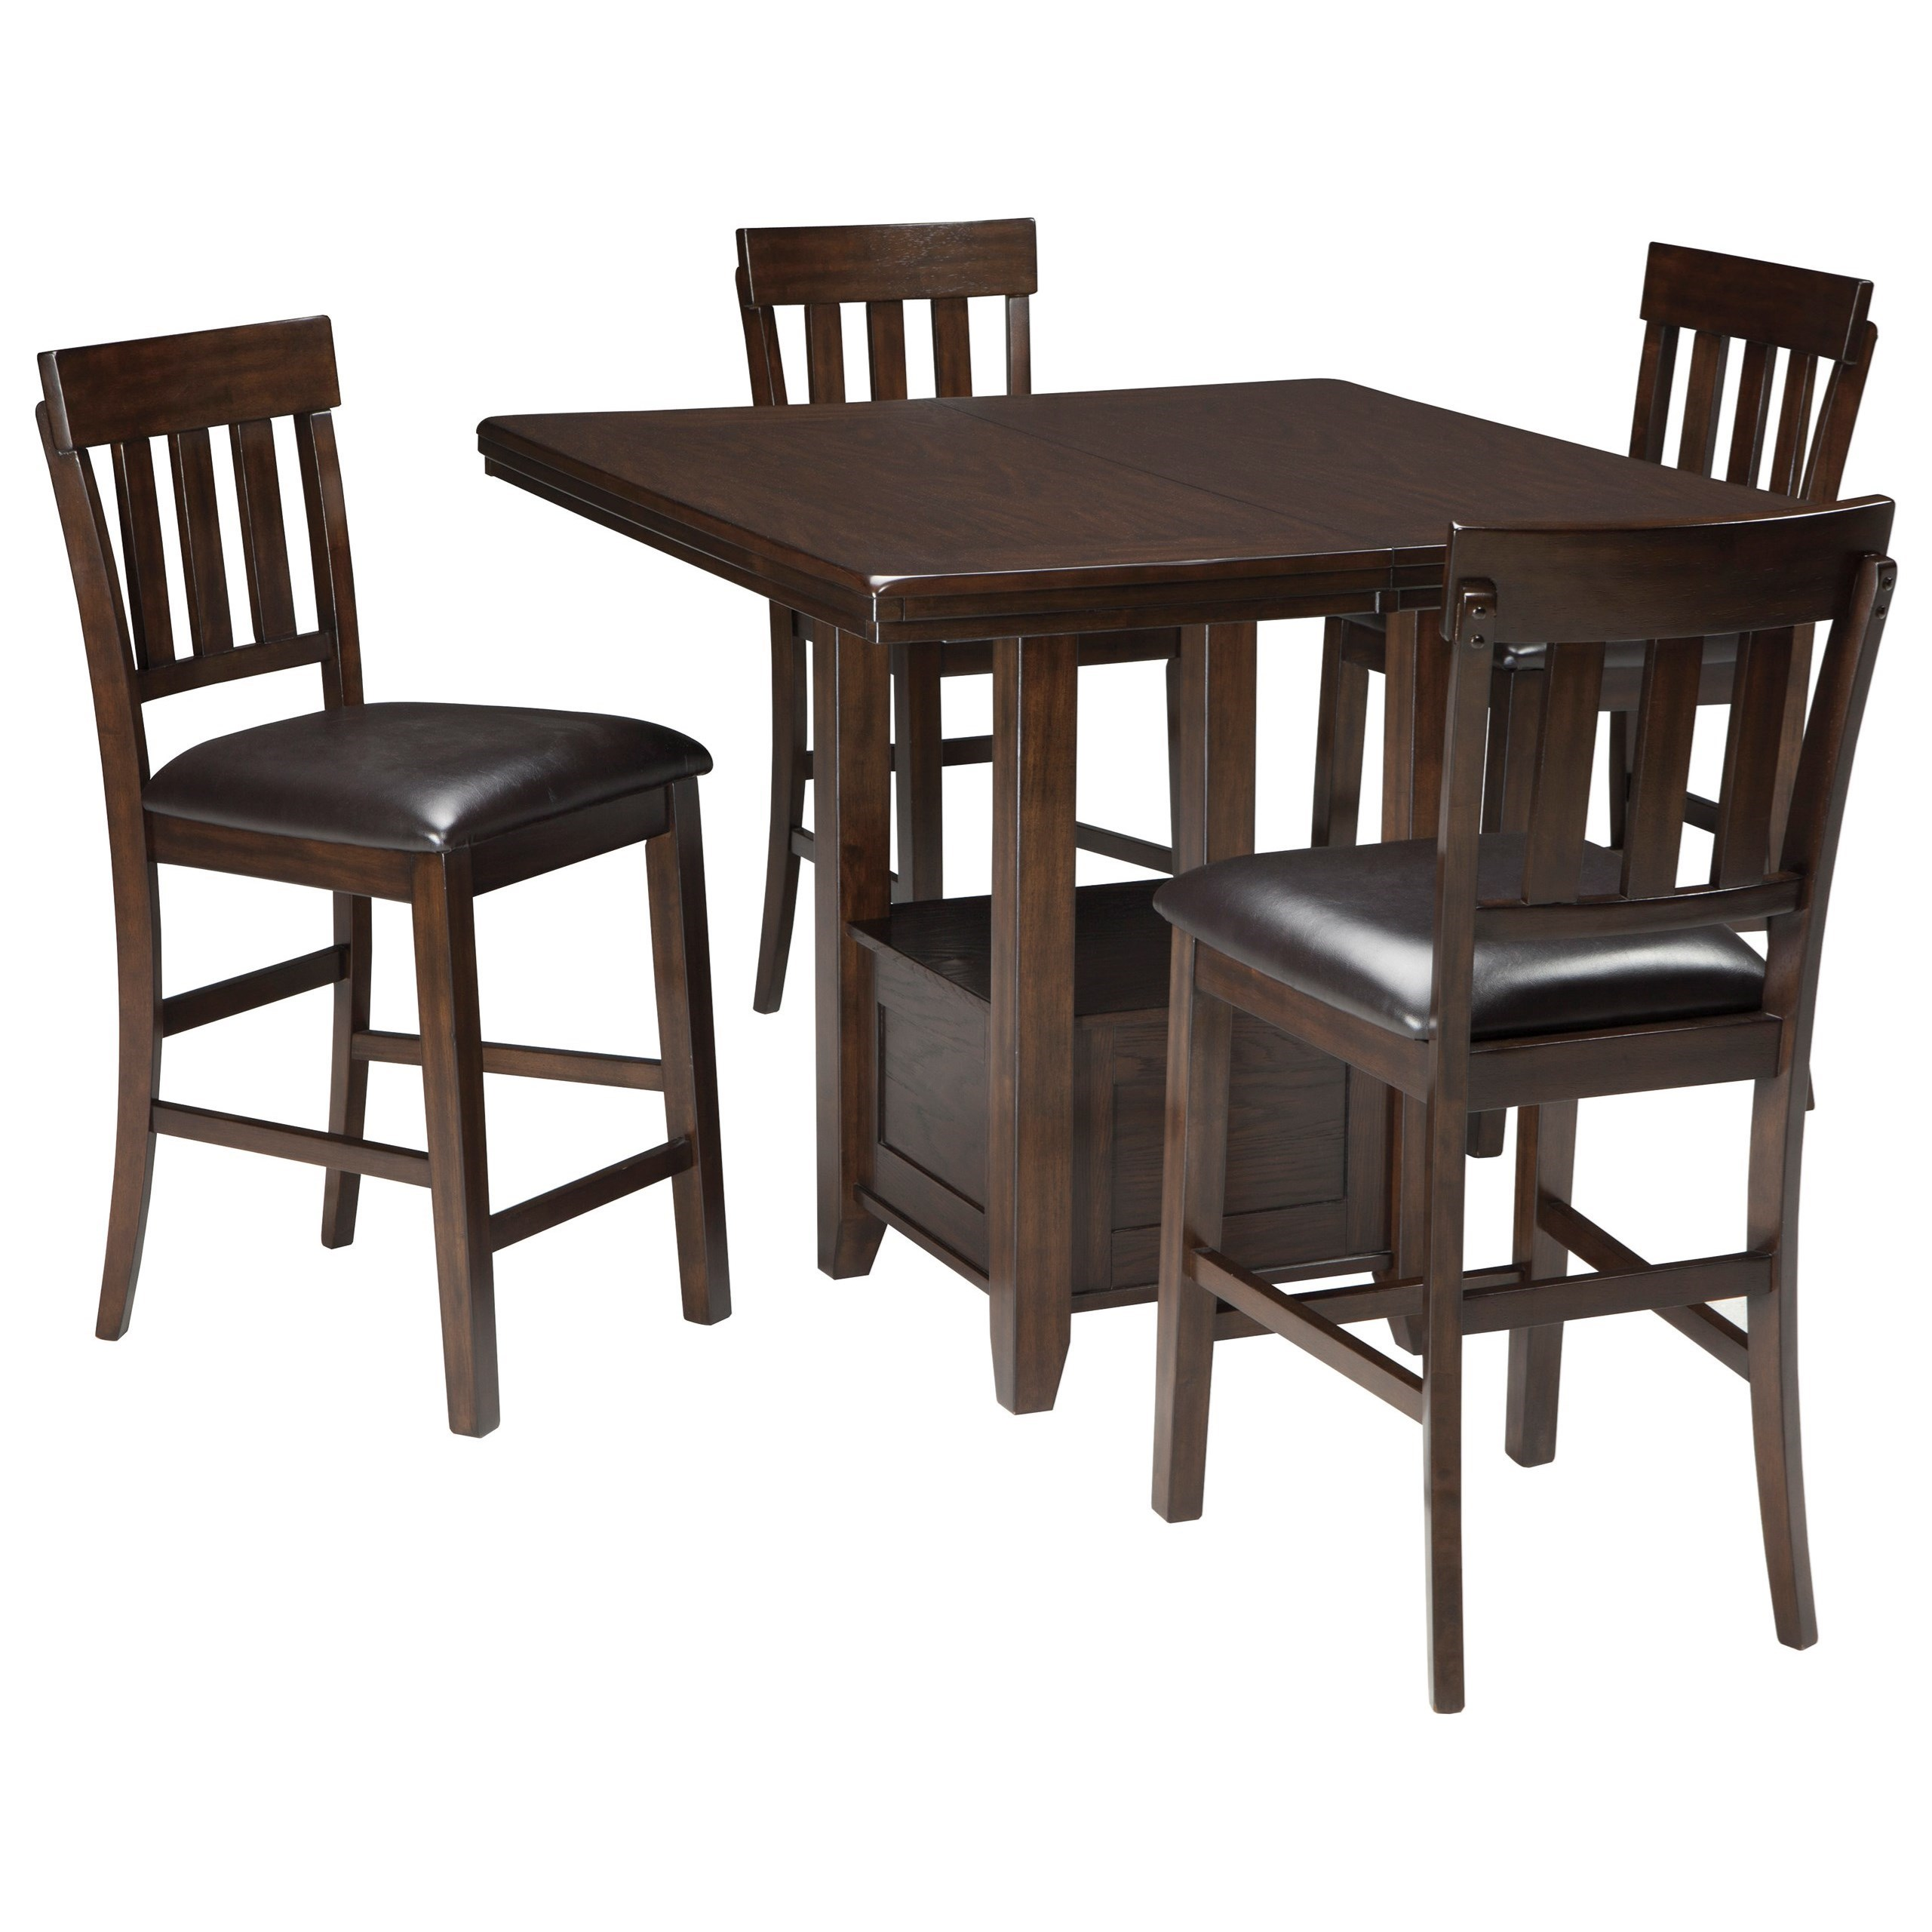 Signature Design By Ashley Haddigan 5 Piece Dining Room